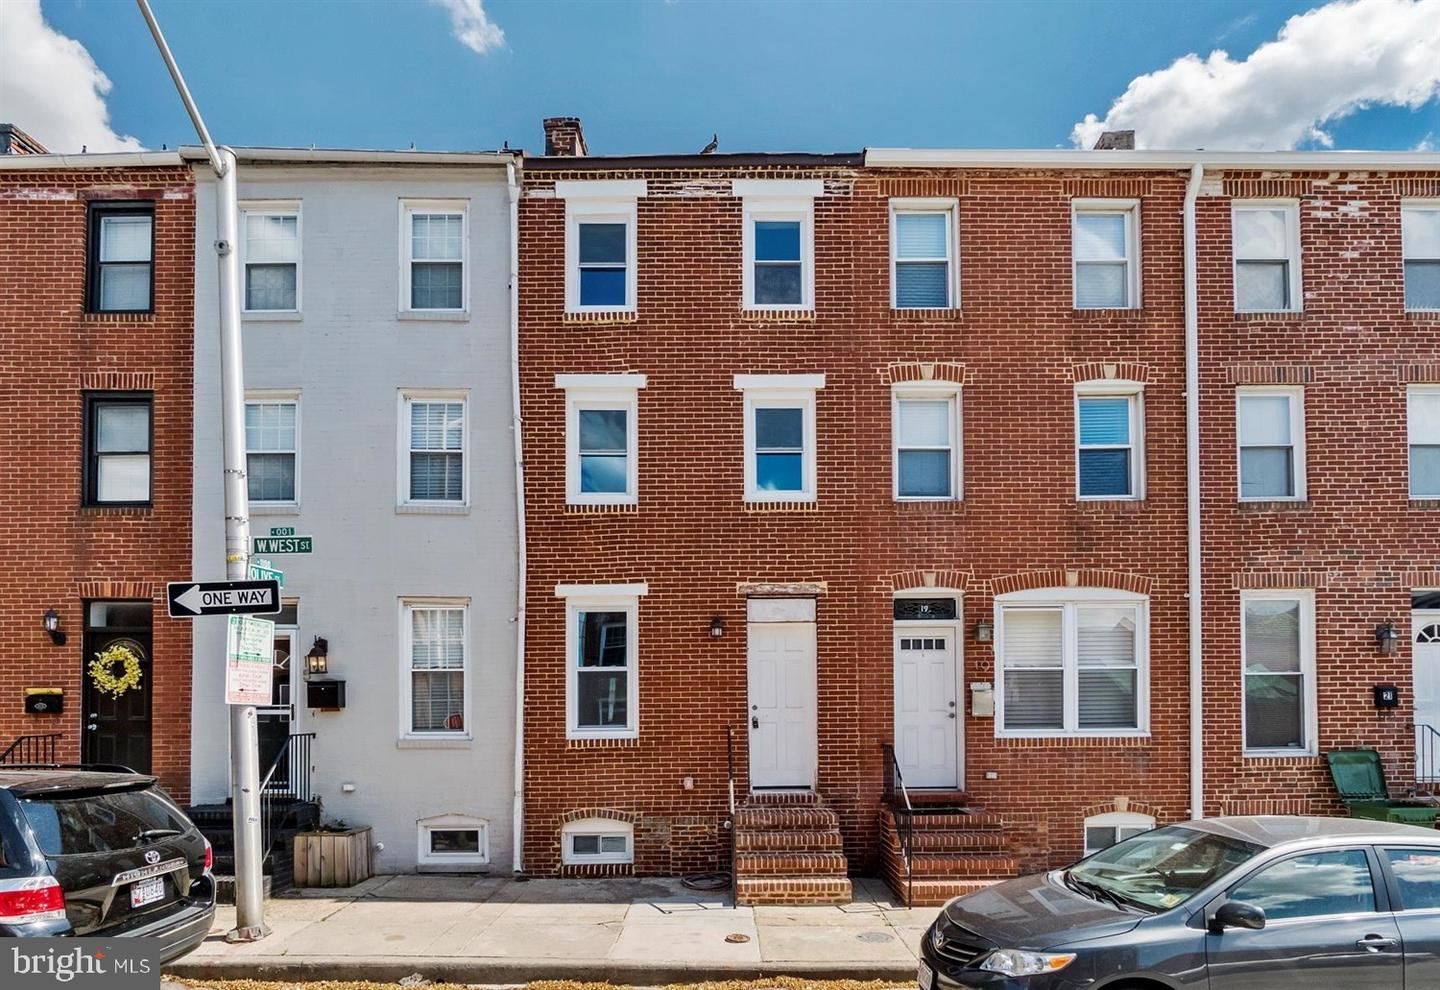 17 W WEST ST, Baltimore, MD 21230 - MLS#: MDBA518618